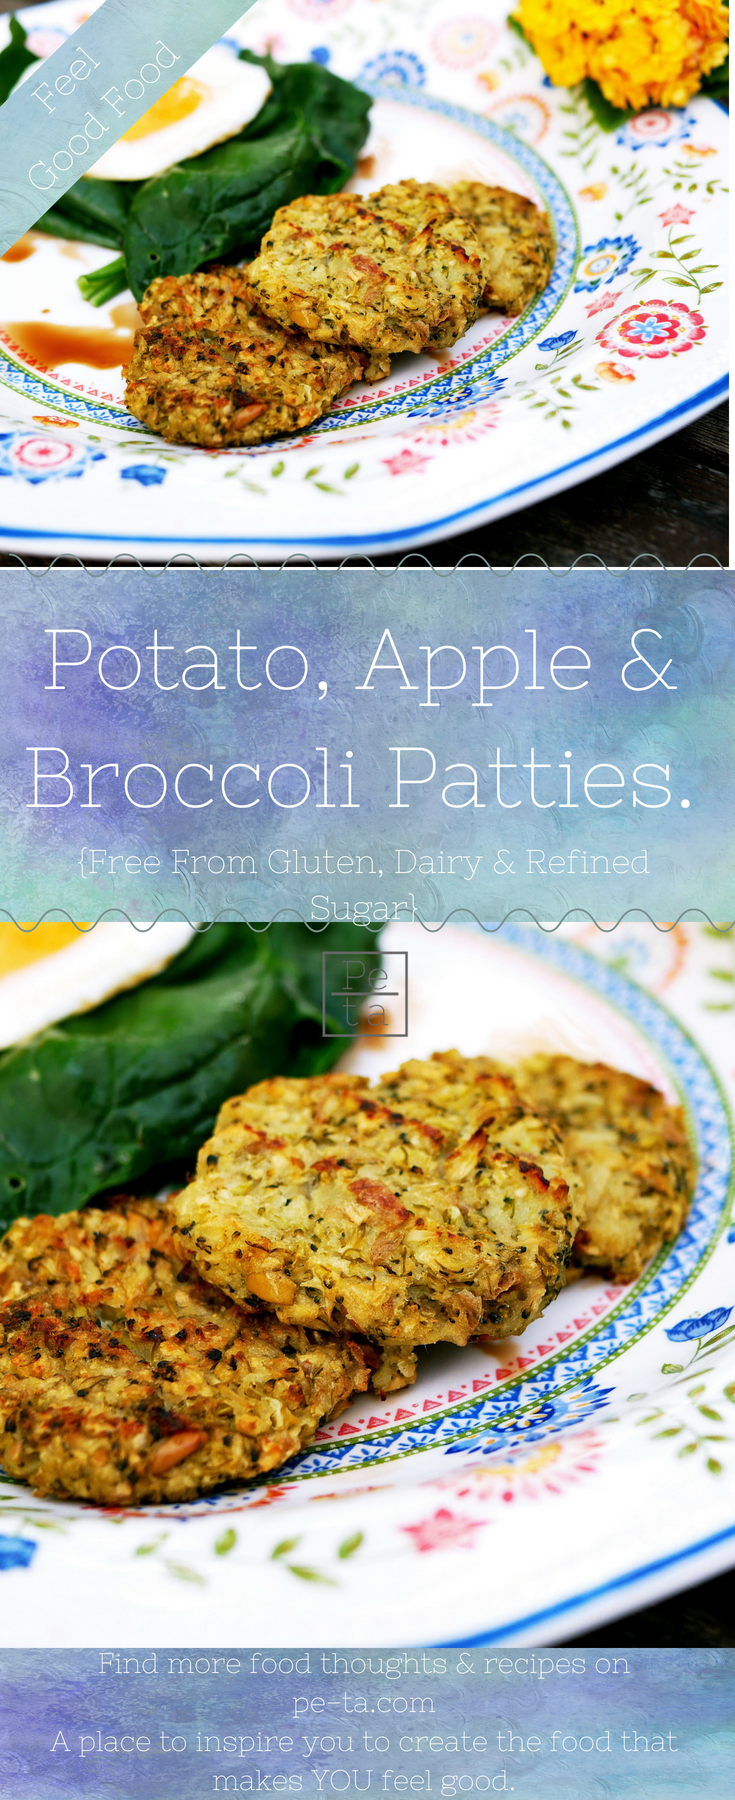 Potato, broccoli and apple patties.